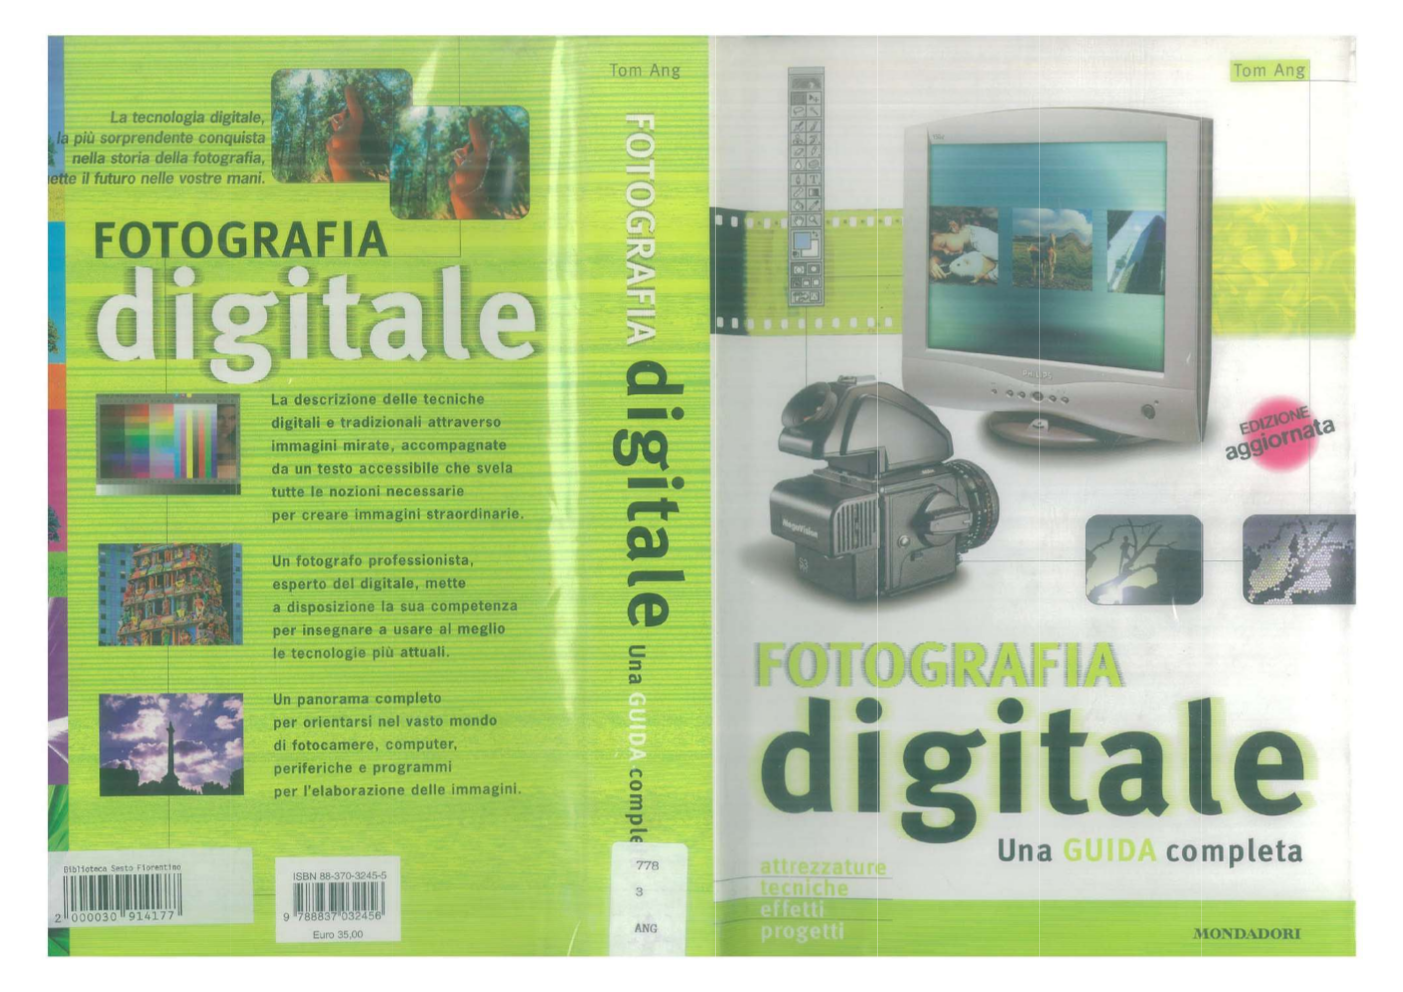 Fotografia Digitale Tom Ang Ebook Cat 5 568b Wiring Diagram Success Darren Criss